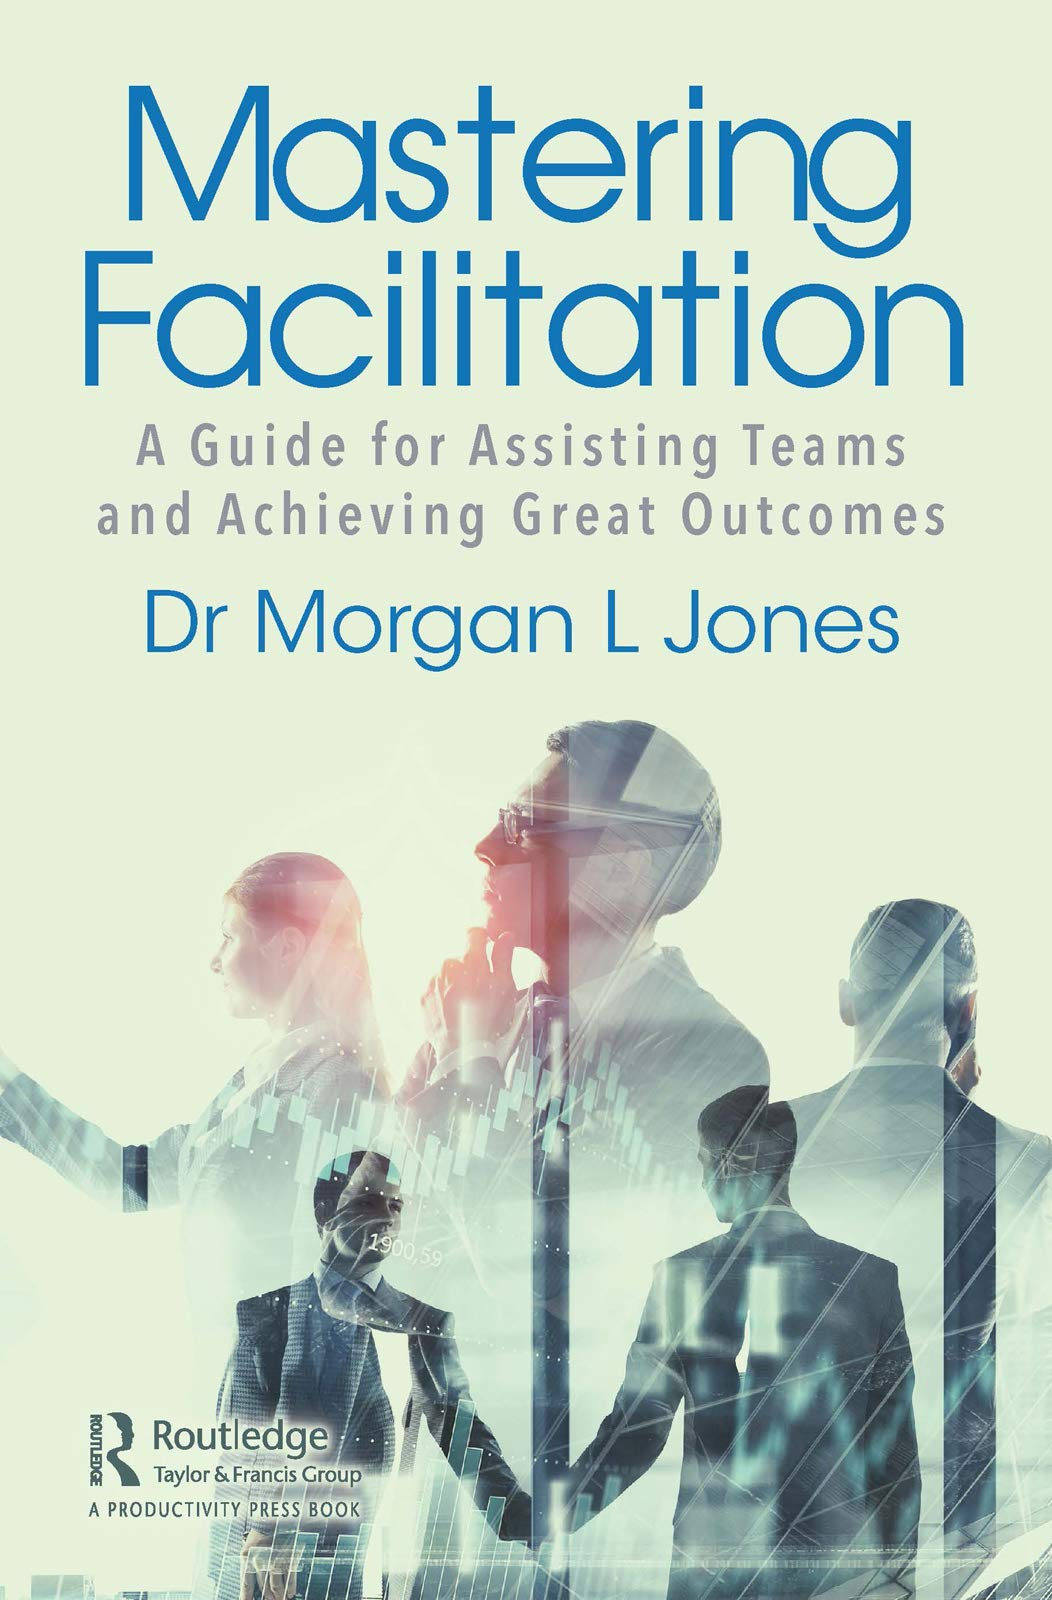 Mastering Facilitation: A Guide for Assisting Teams and Achieving Great Outcomes